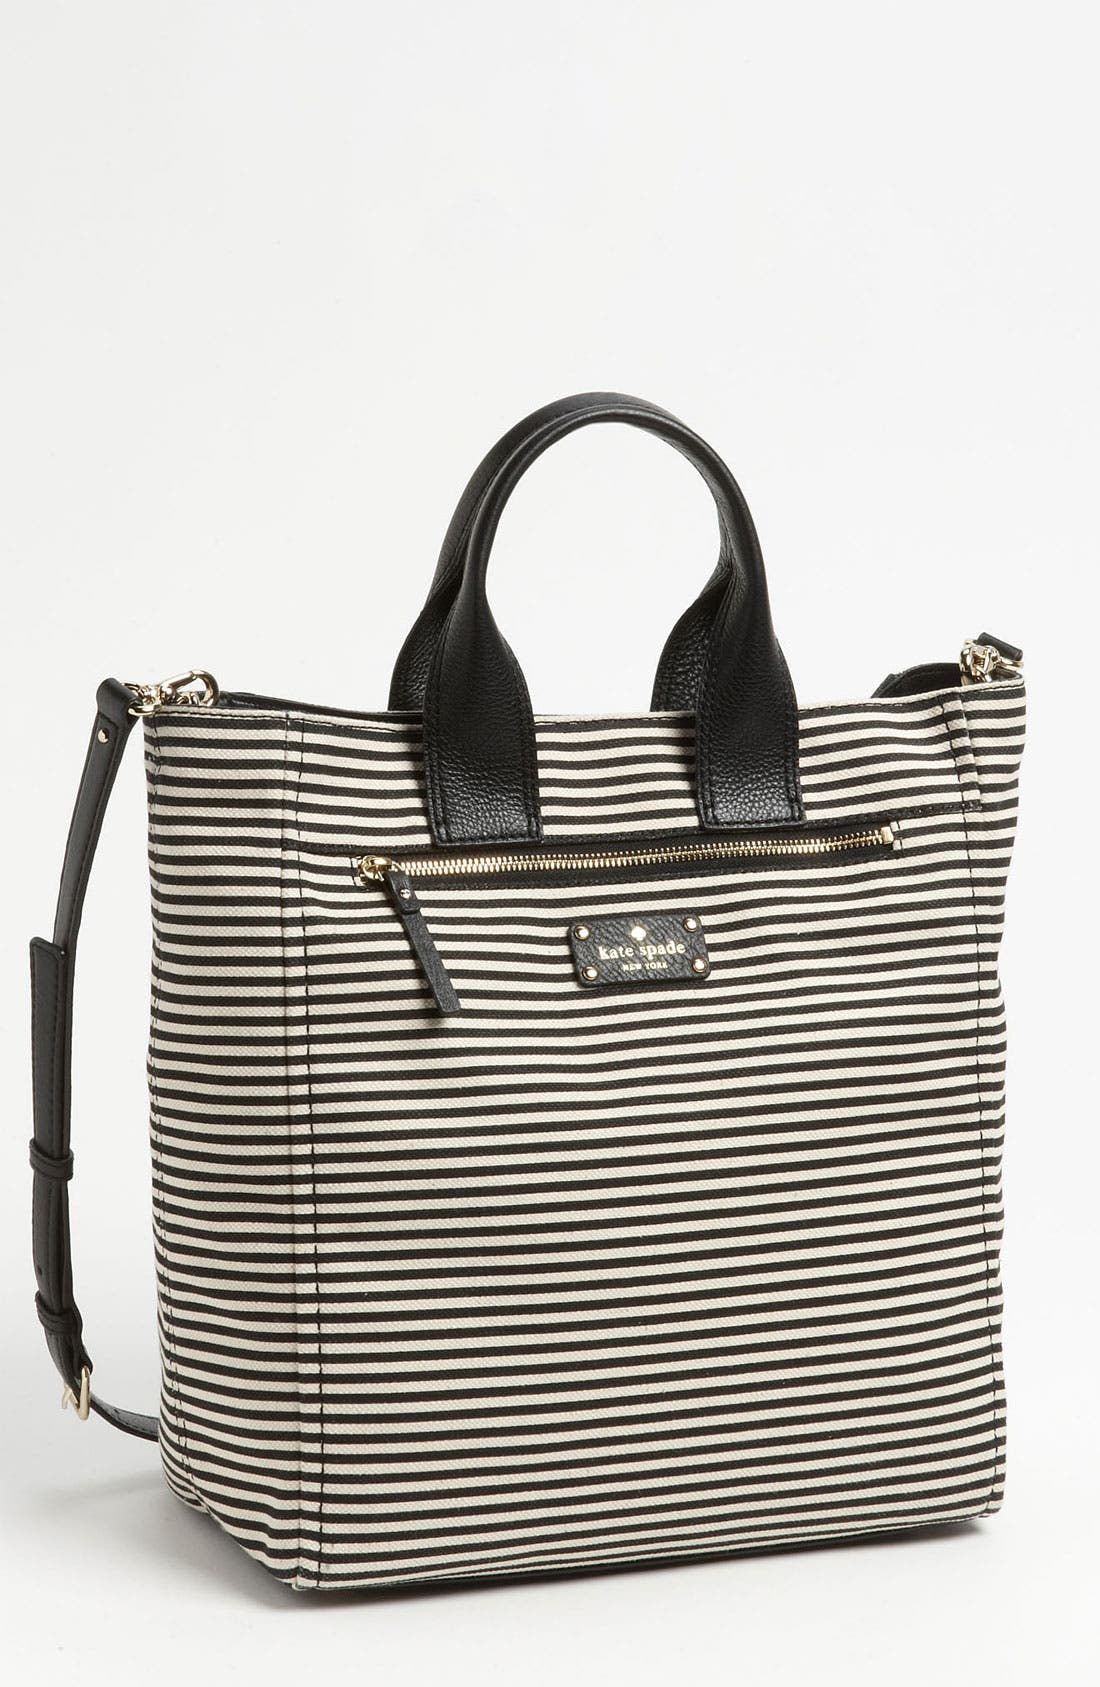 Main Image - kate spade new york 'hayley' tote